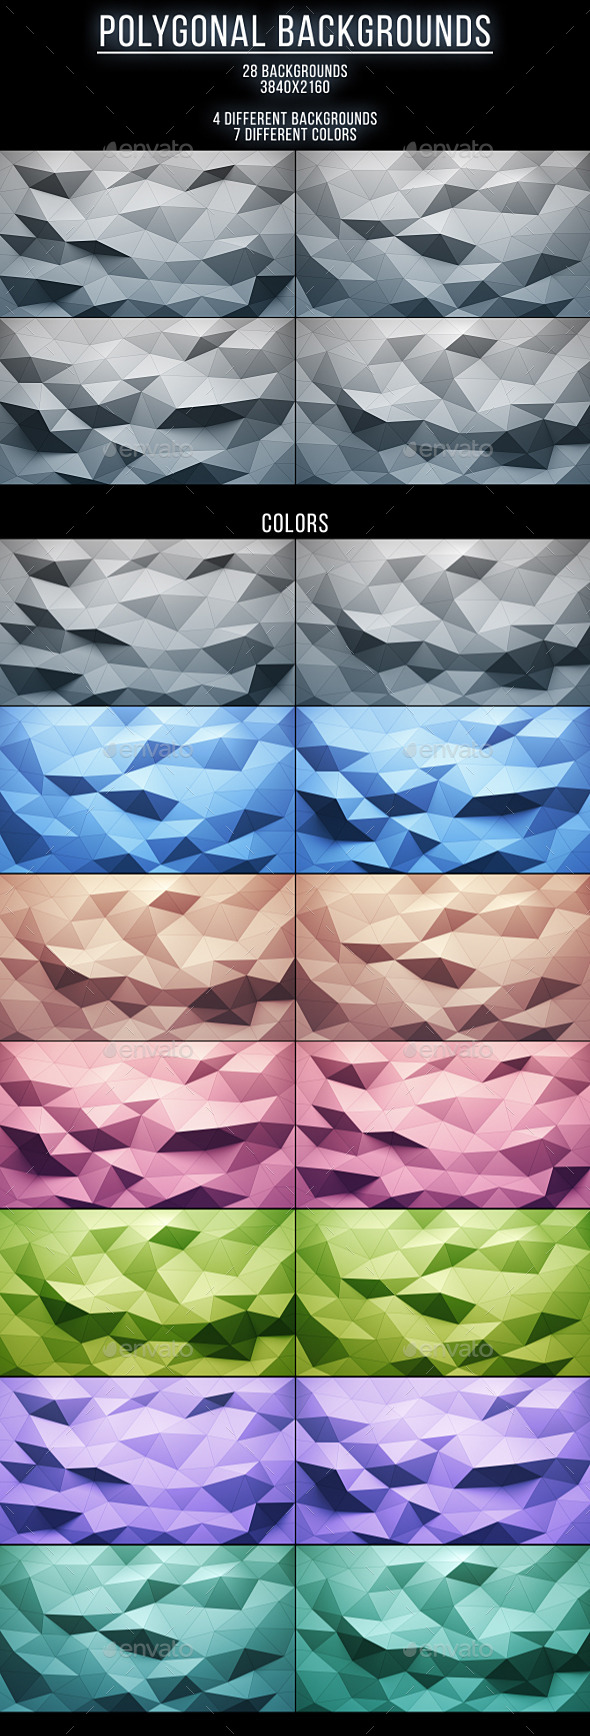 28 Polygonal Backgrounds - Abstract Backgrounds